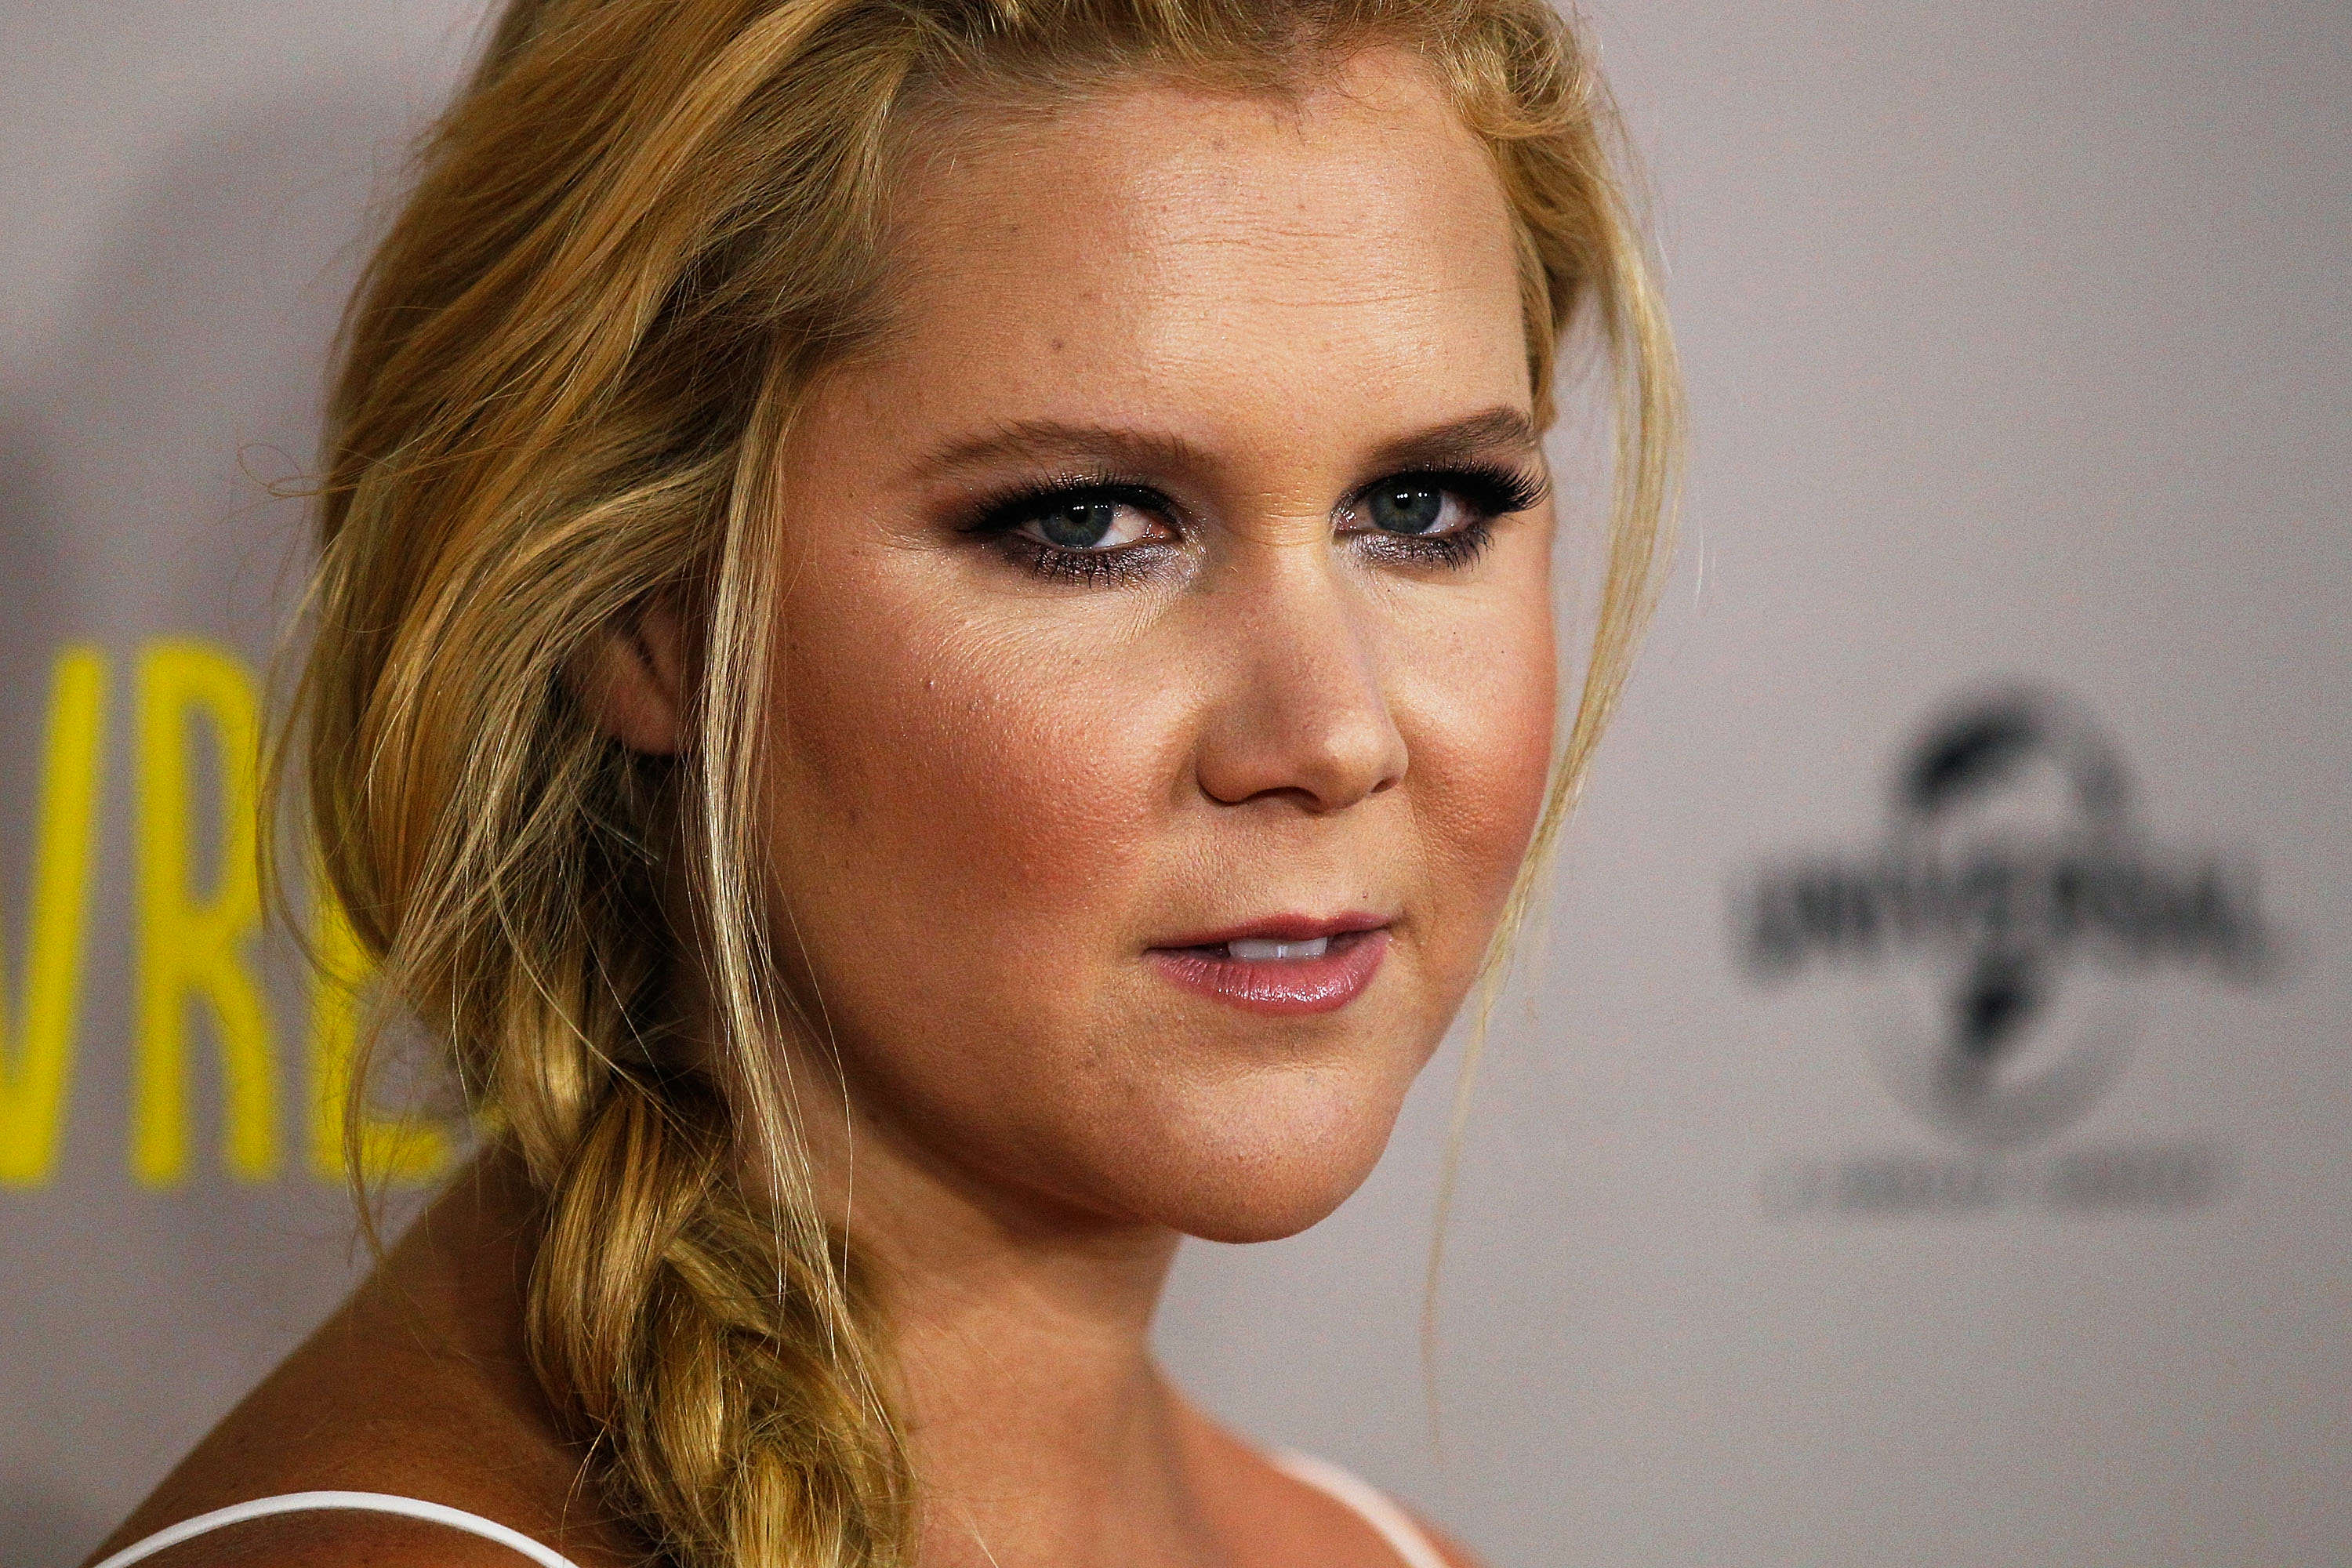 Amy Schumer Just Took Her Knickers Off For A Good Cause GettyImages 481359556